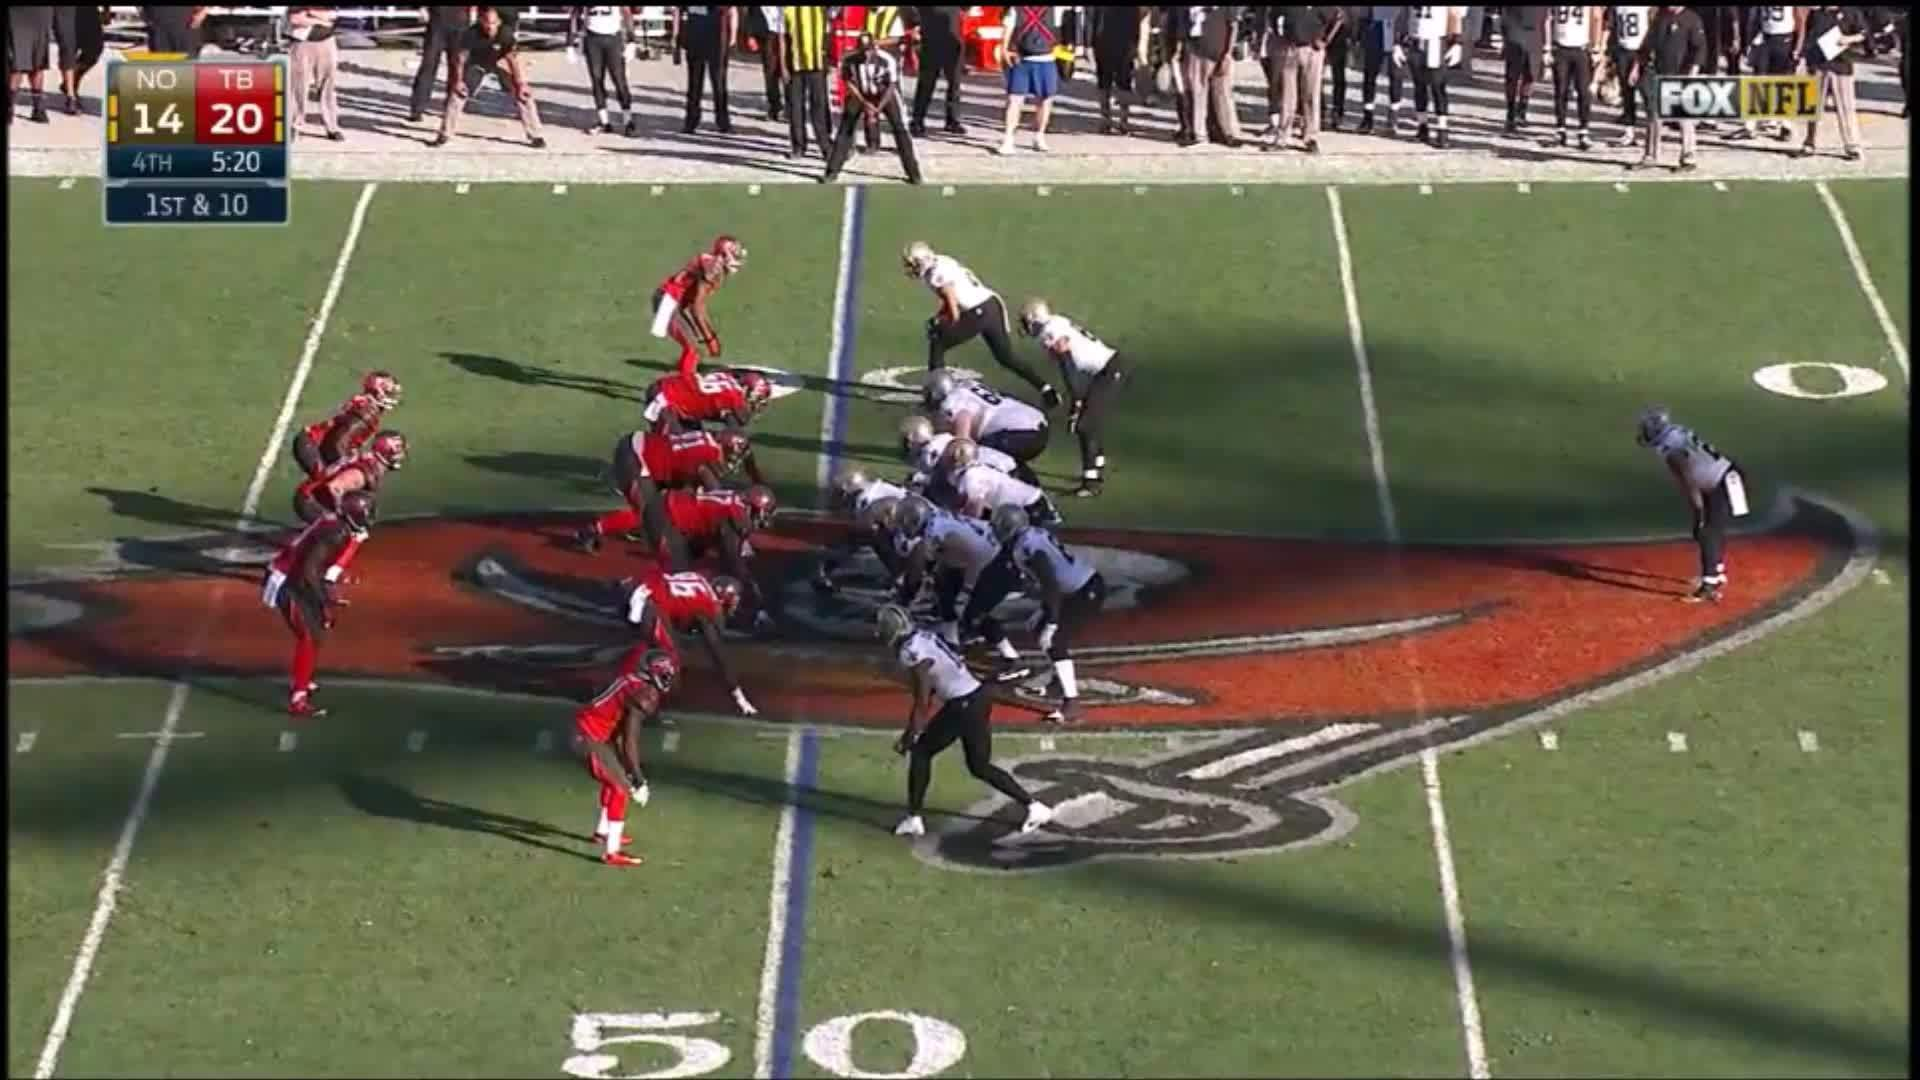 drew brees, new orleans saints, nfl, (2014) Drew Brees reception vs. Buccaneers GIFs